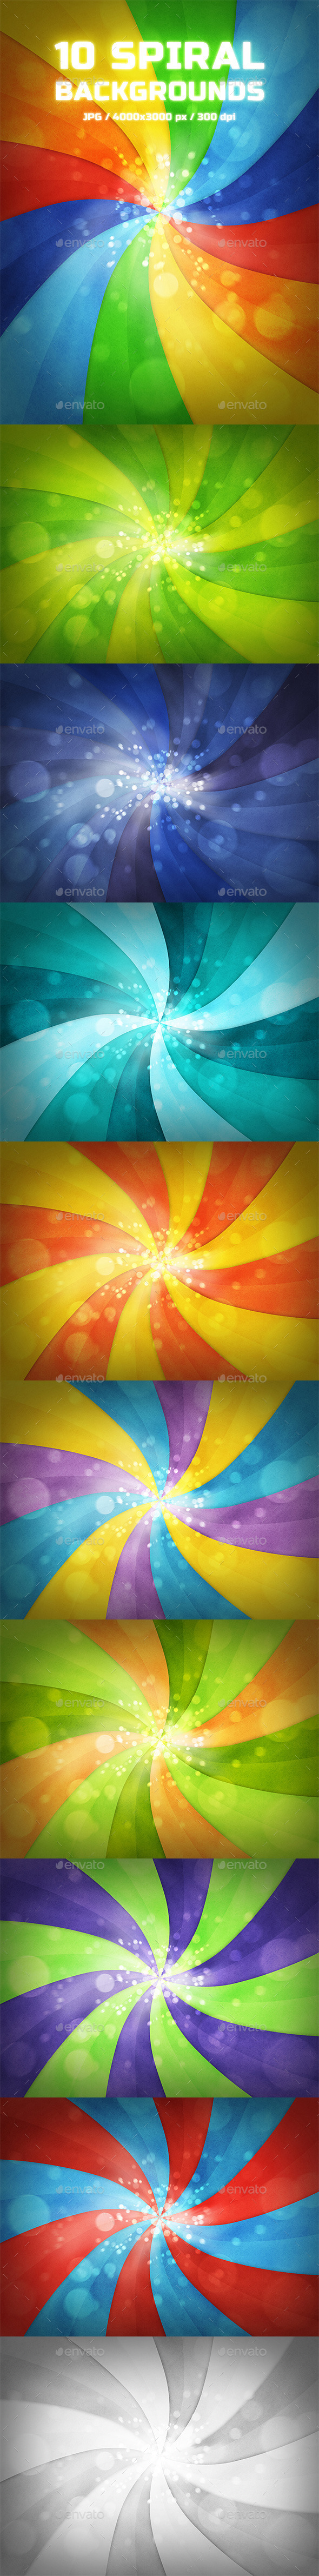 10 Spiral Backgrounds - Abstract Backgrounds